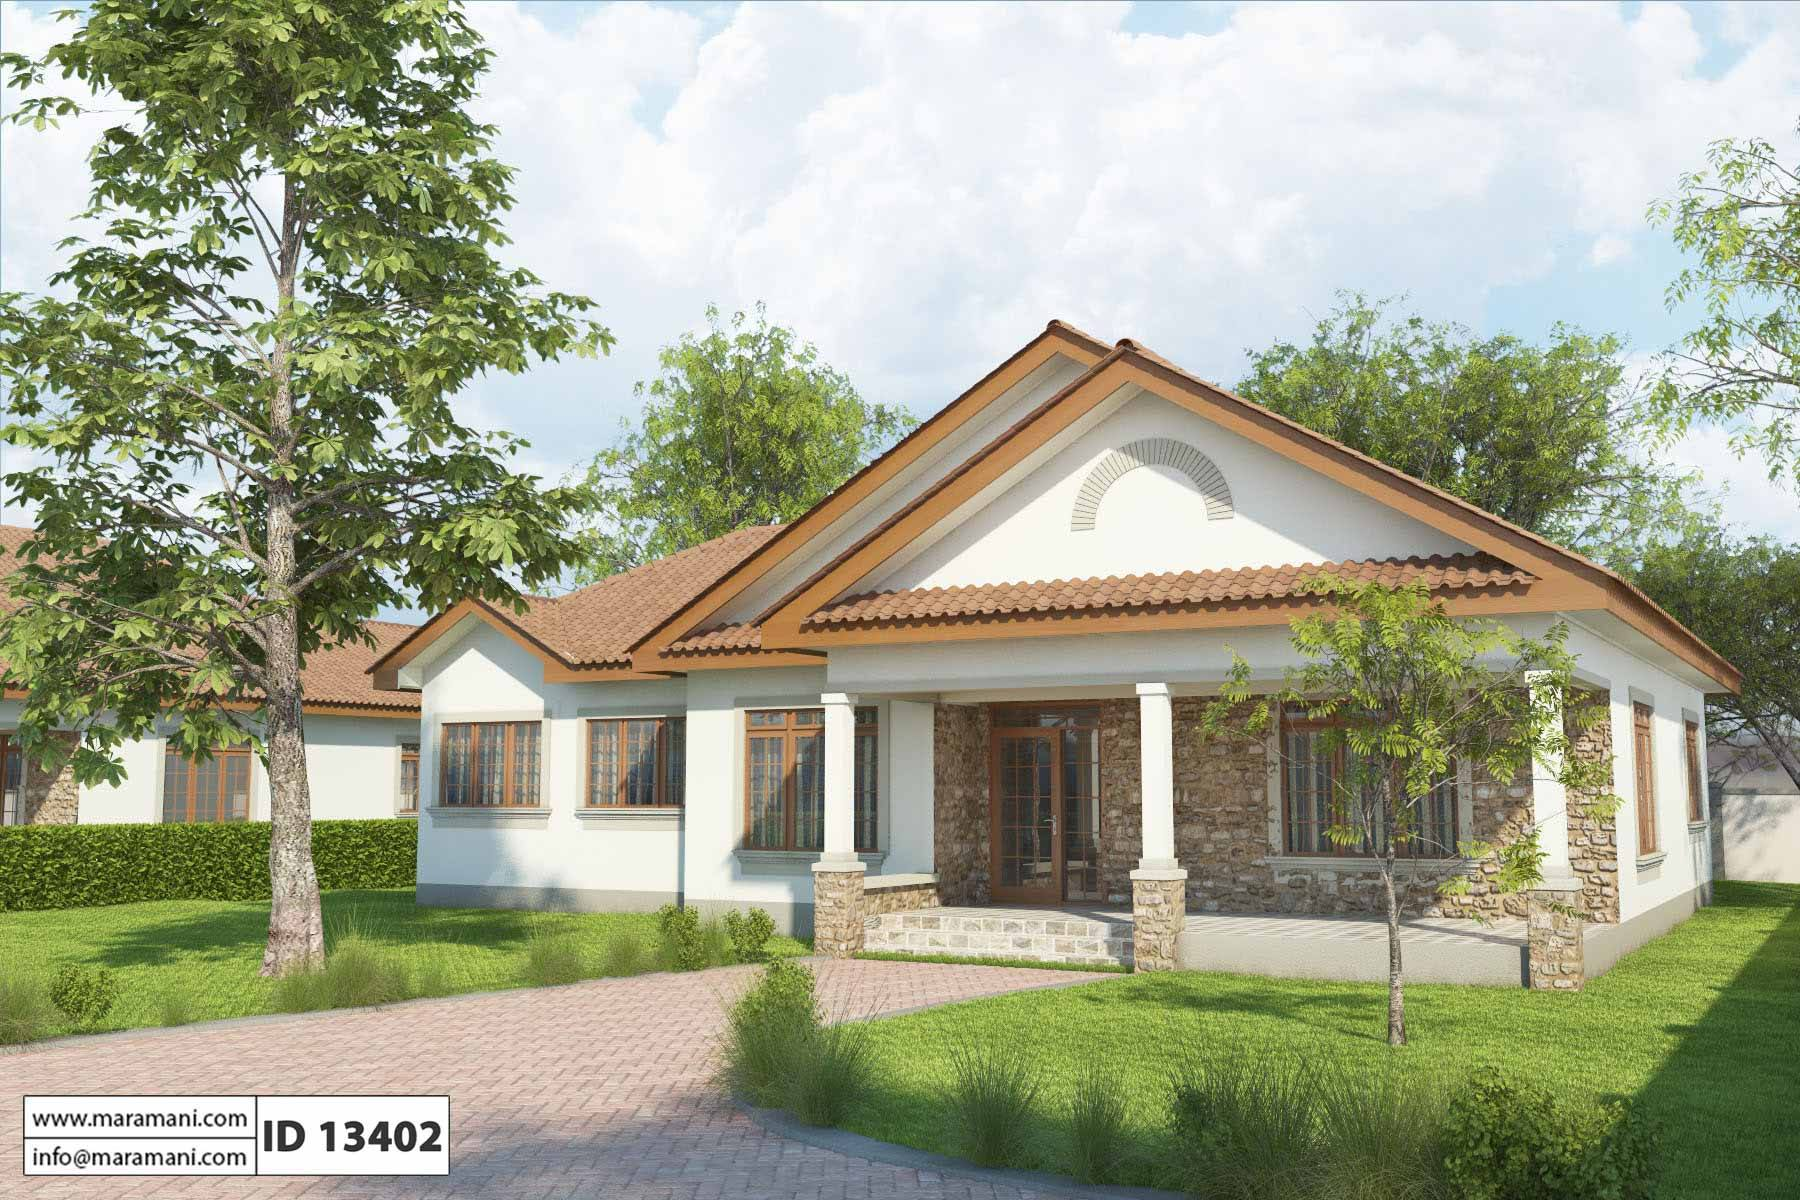 3 Bedroom House Plans Designs for Africa House Plans by Maramani